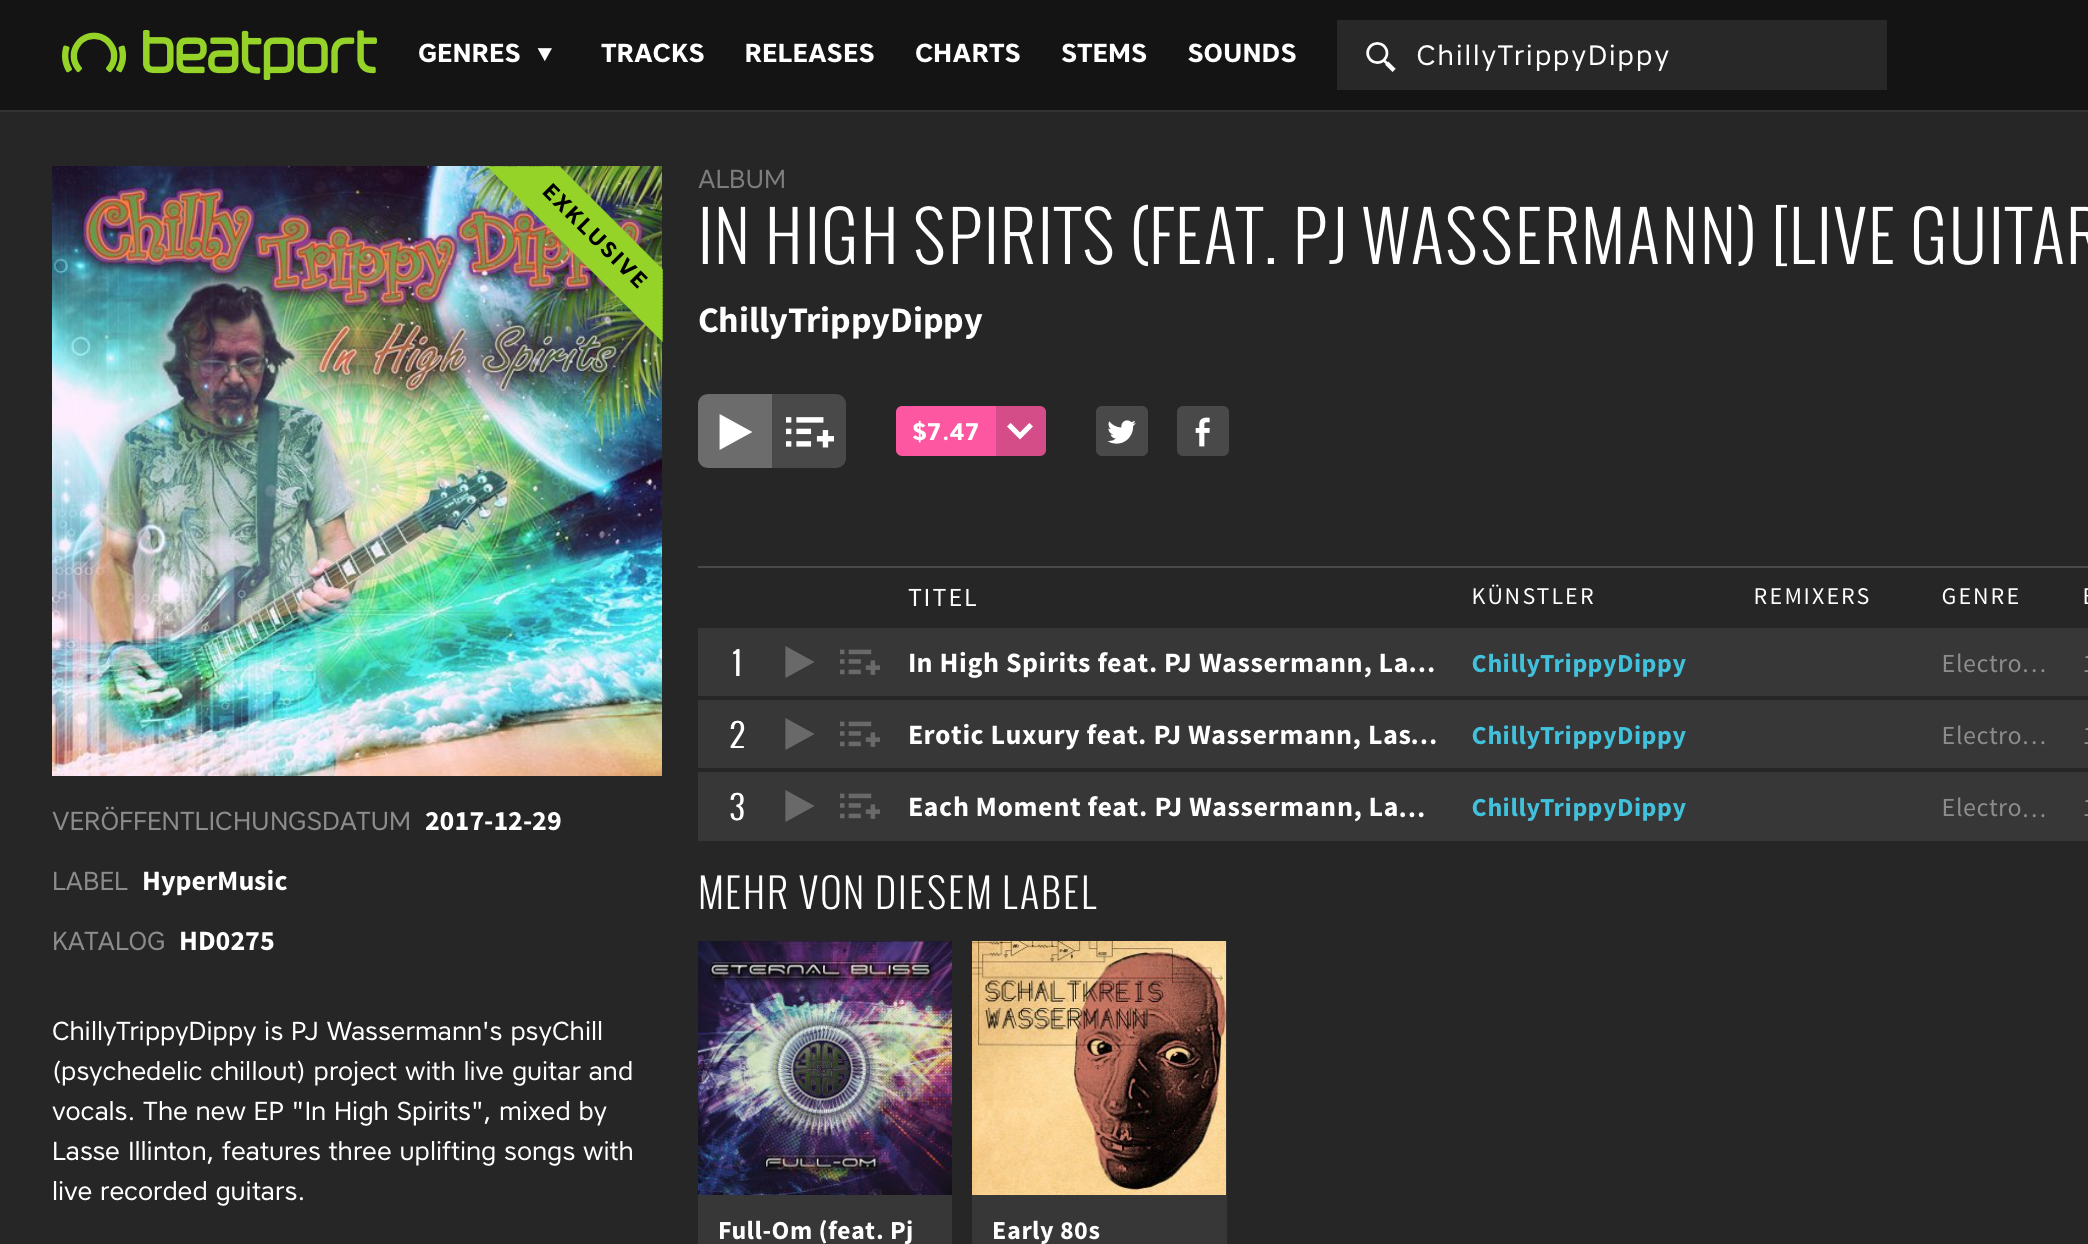 New EP now on Beatport - ChillyTrippyDippy